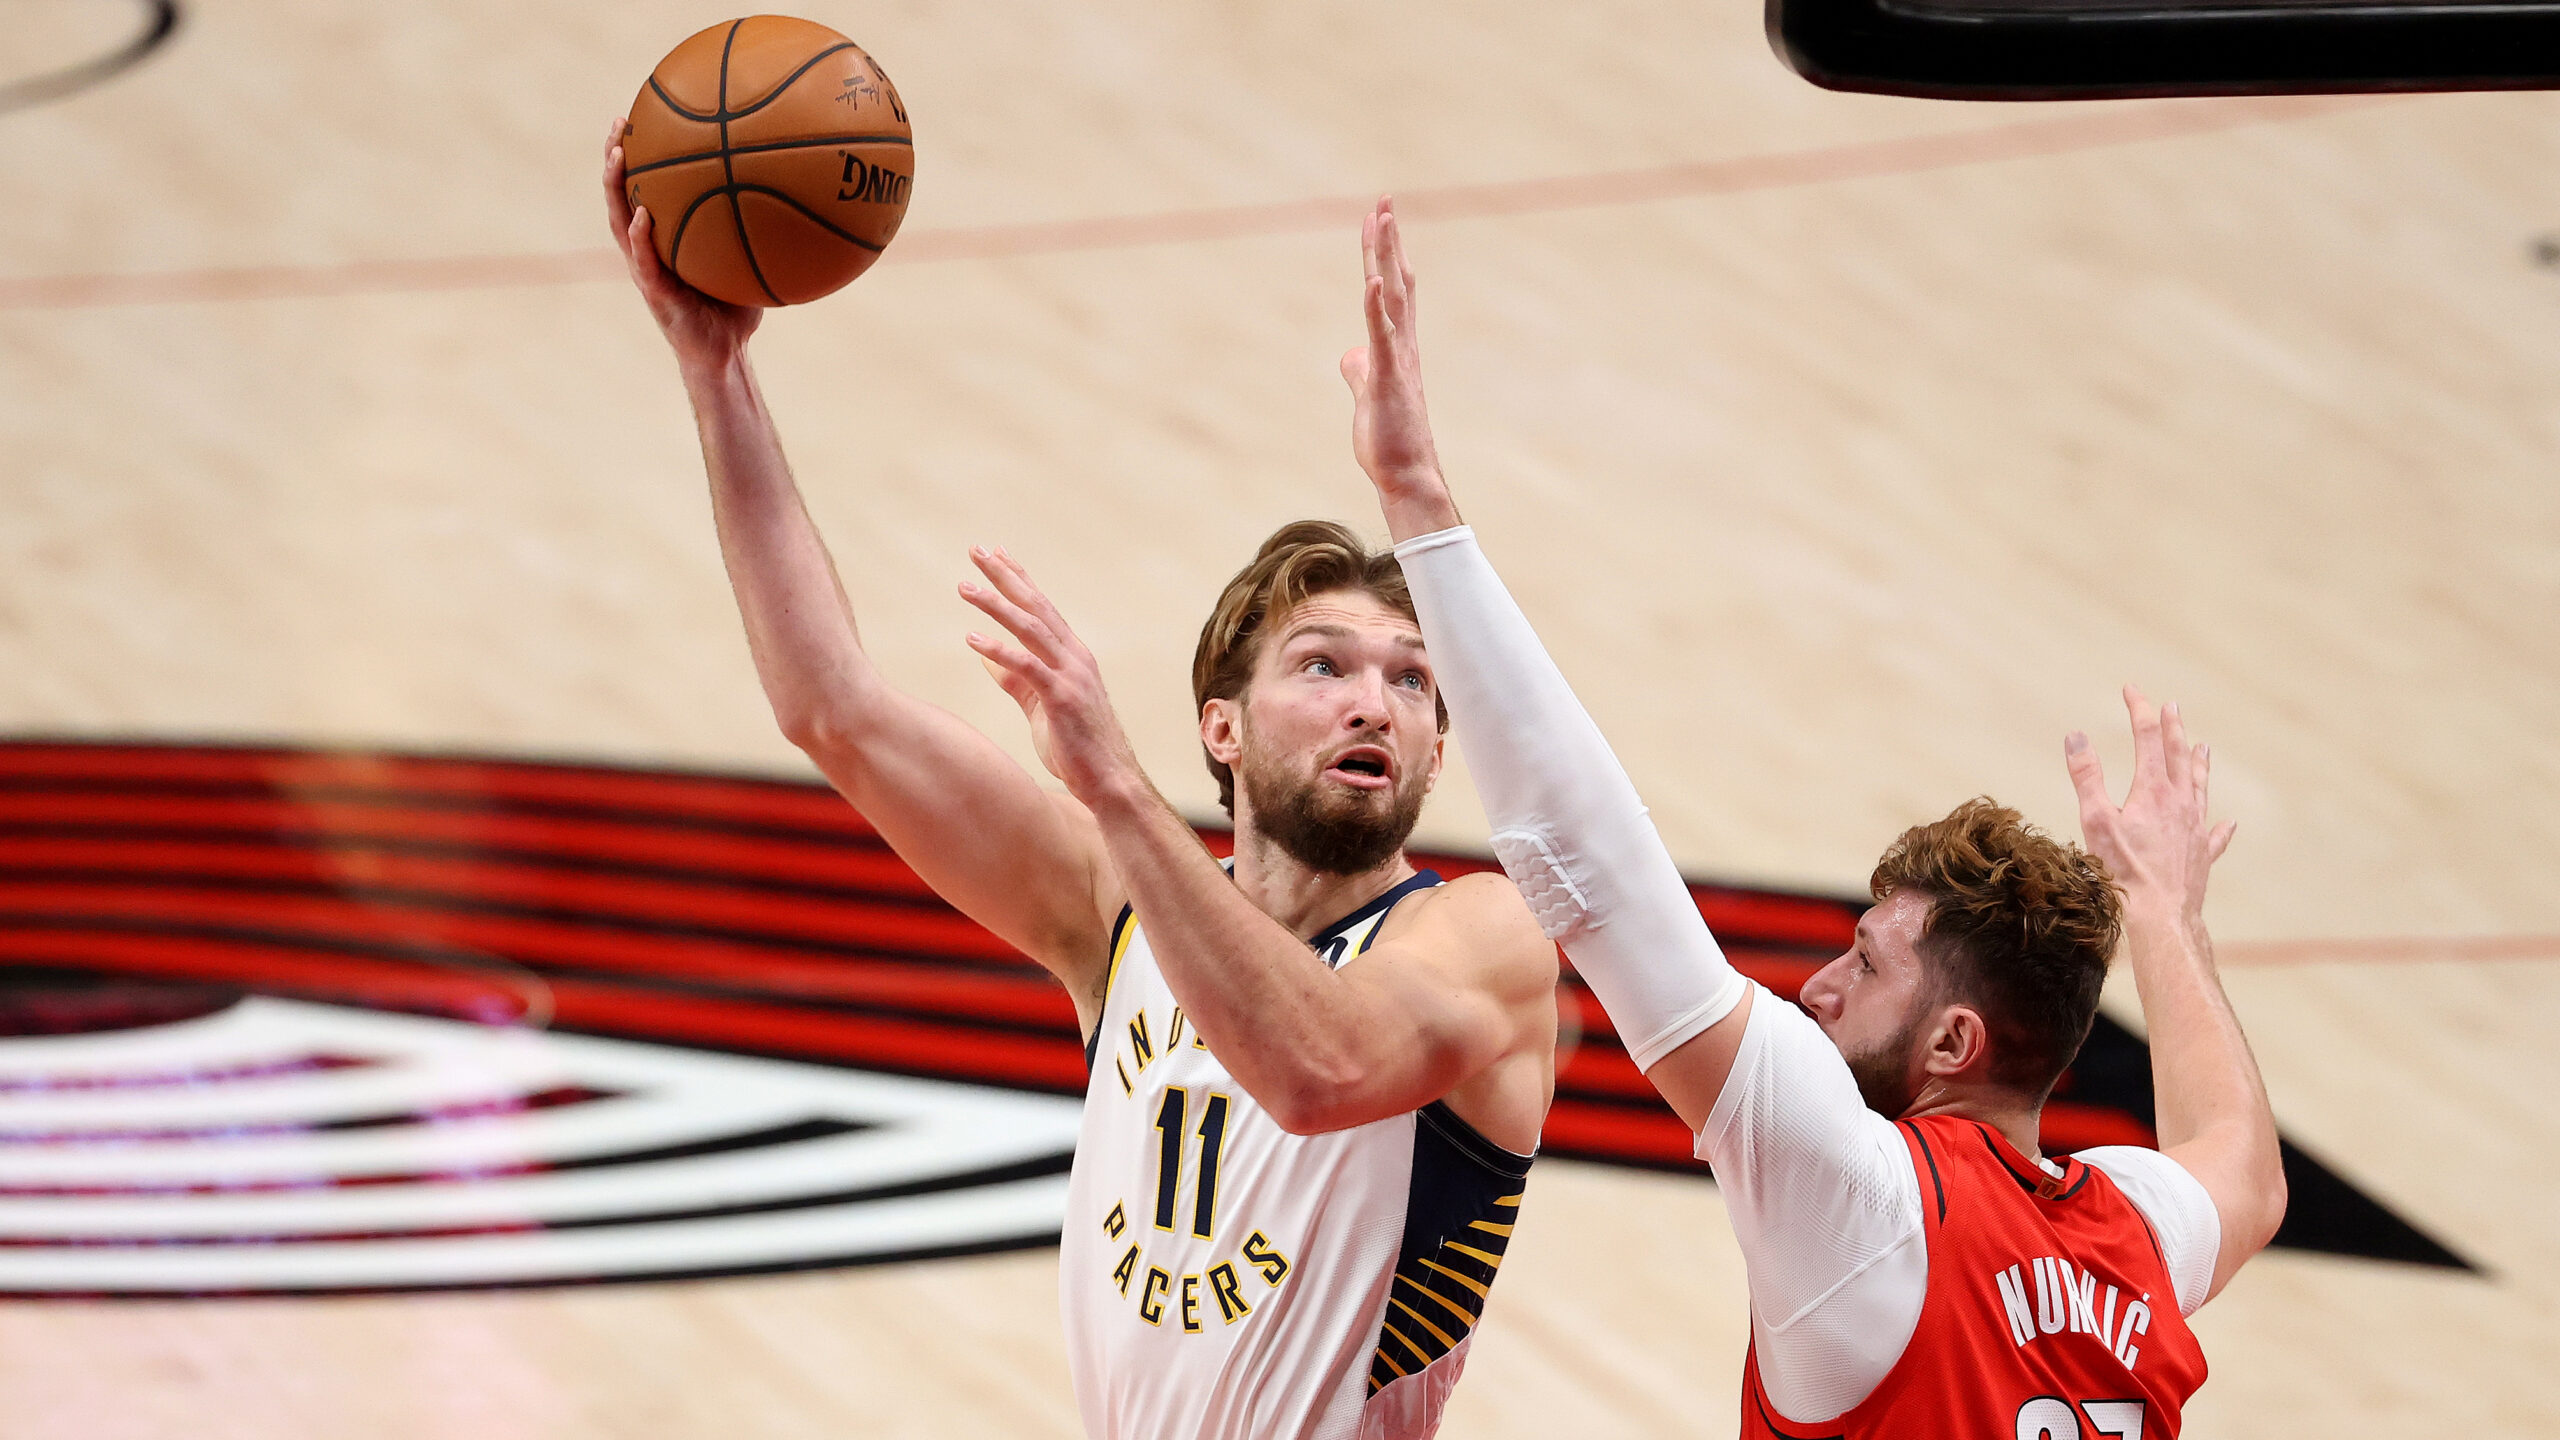 Game Recap: Pacers 111, Trail Blazers 87